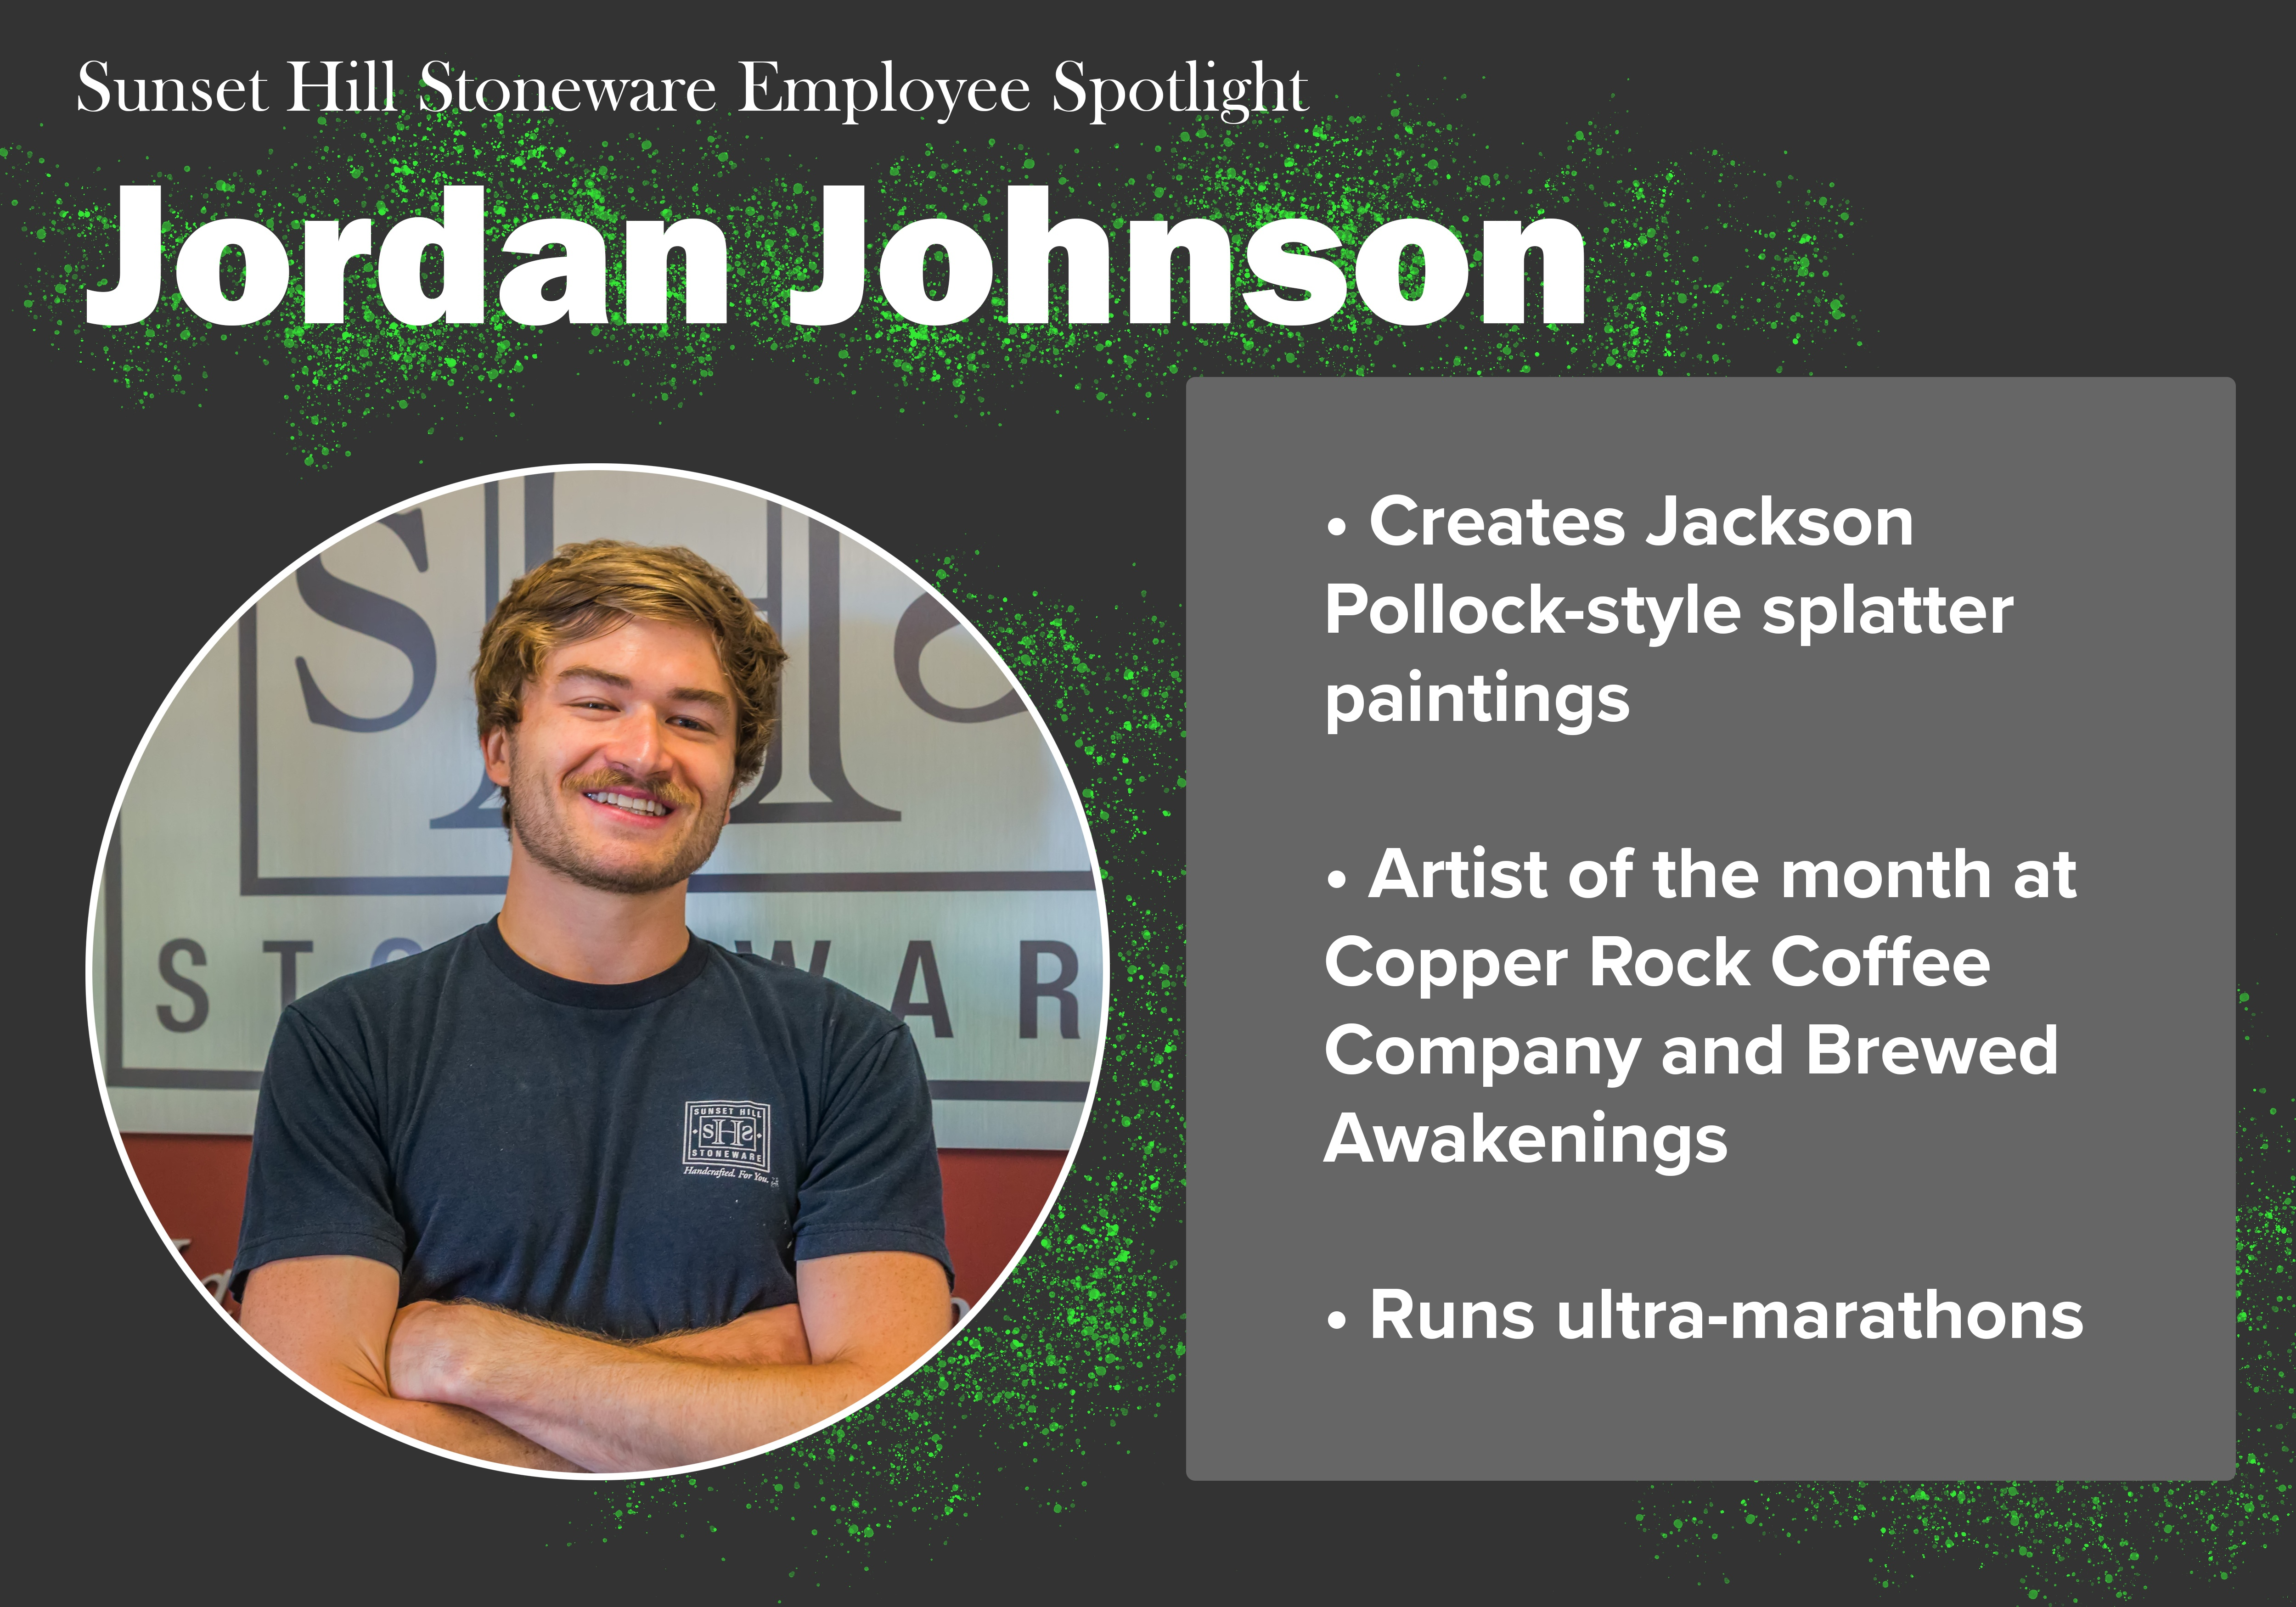 Sunset Hill Stoneware Employee Spotlight: Jordan Johnson